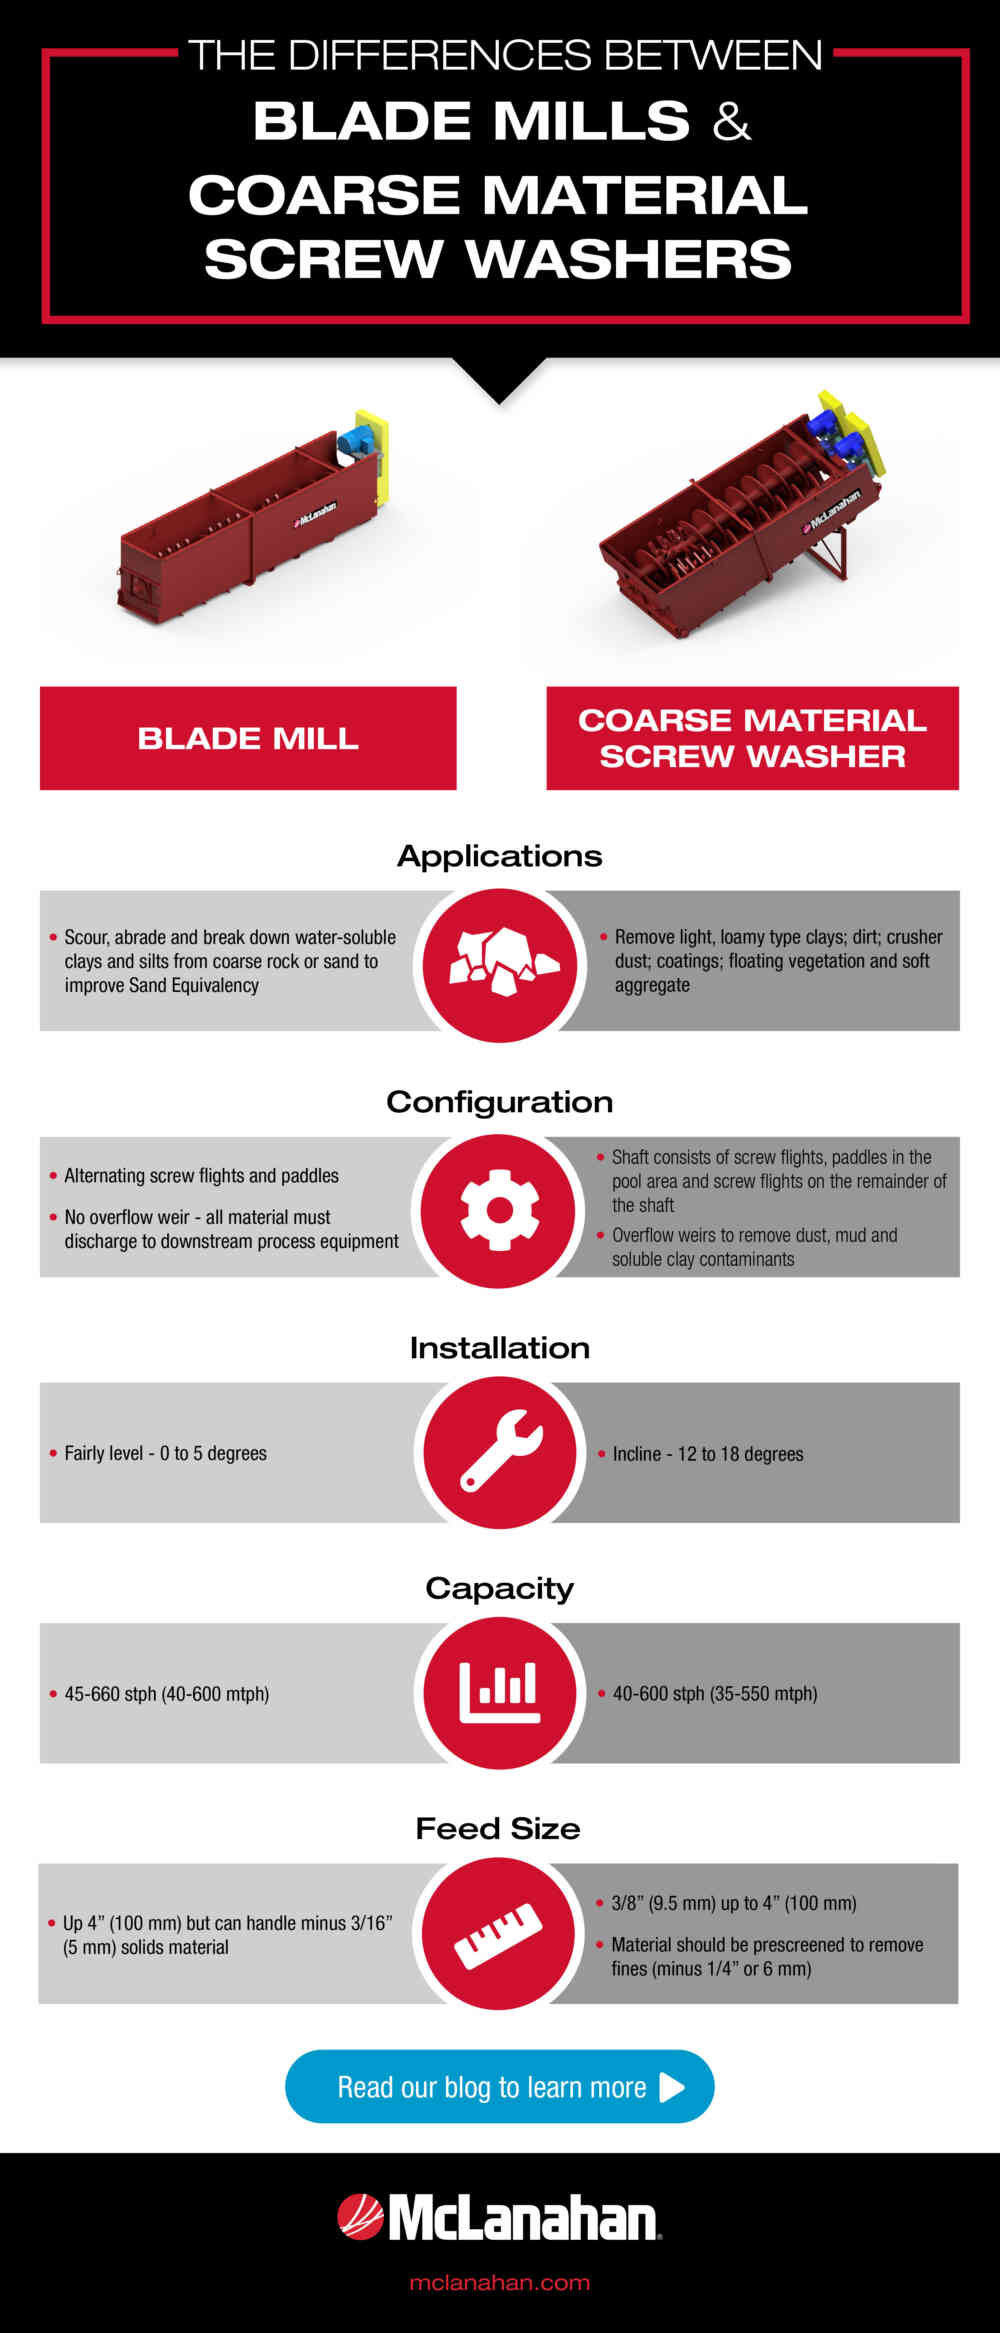 The Differences Between Blade Mills Coarse Material Screw Washers Infographic